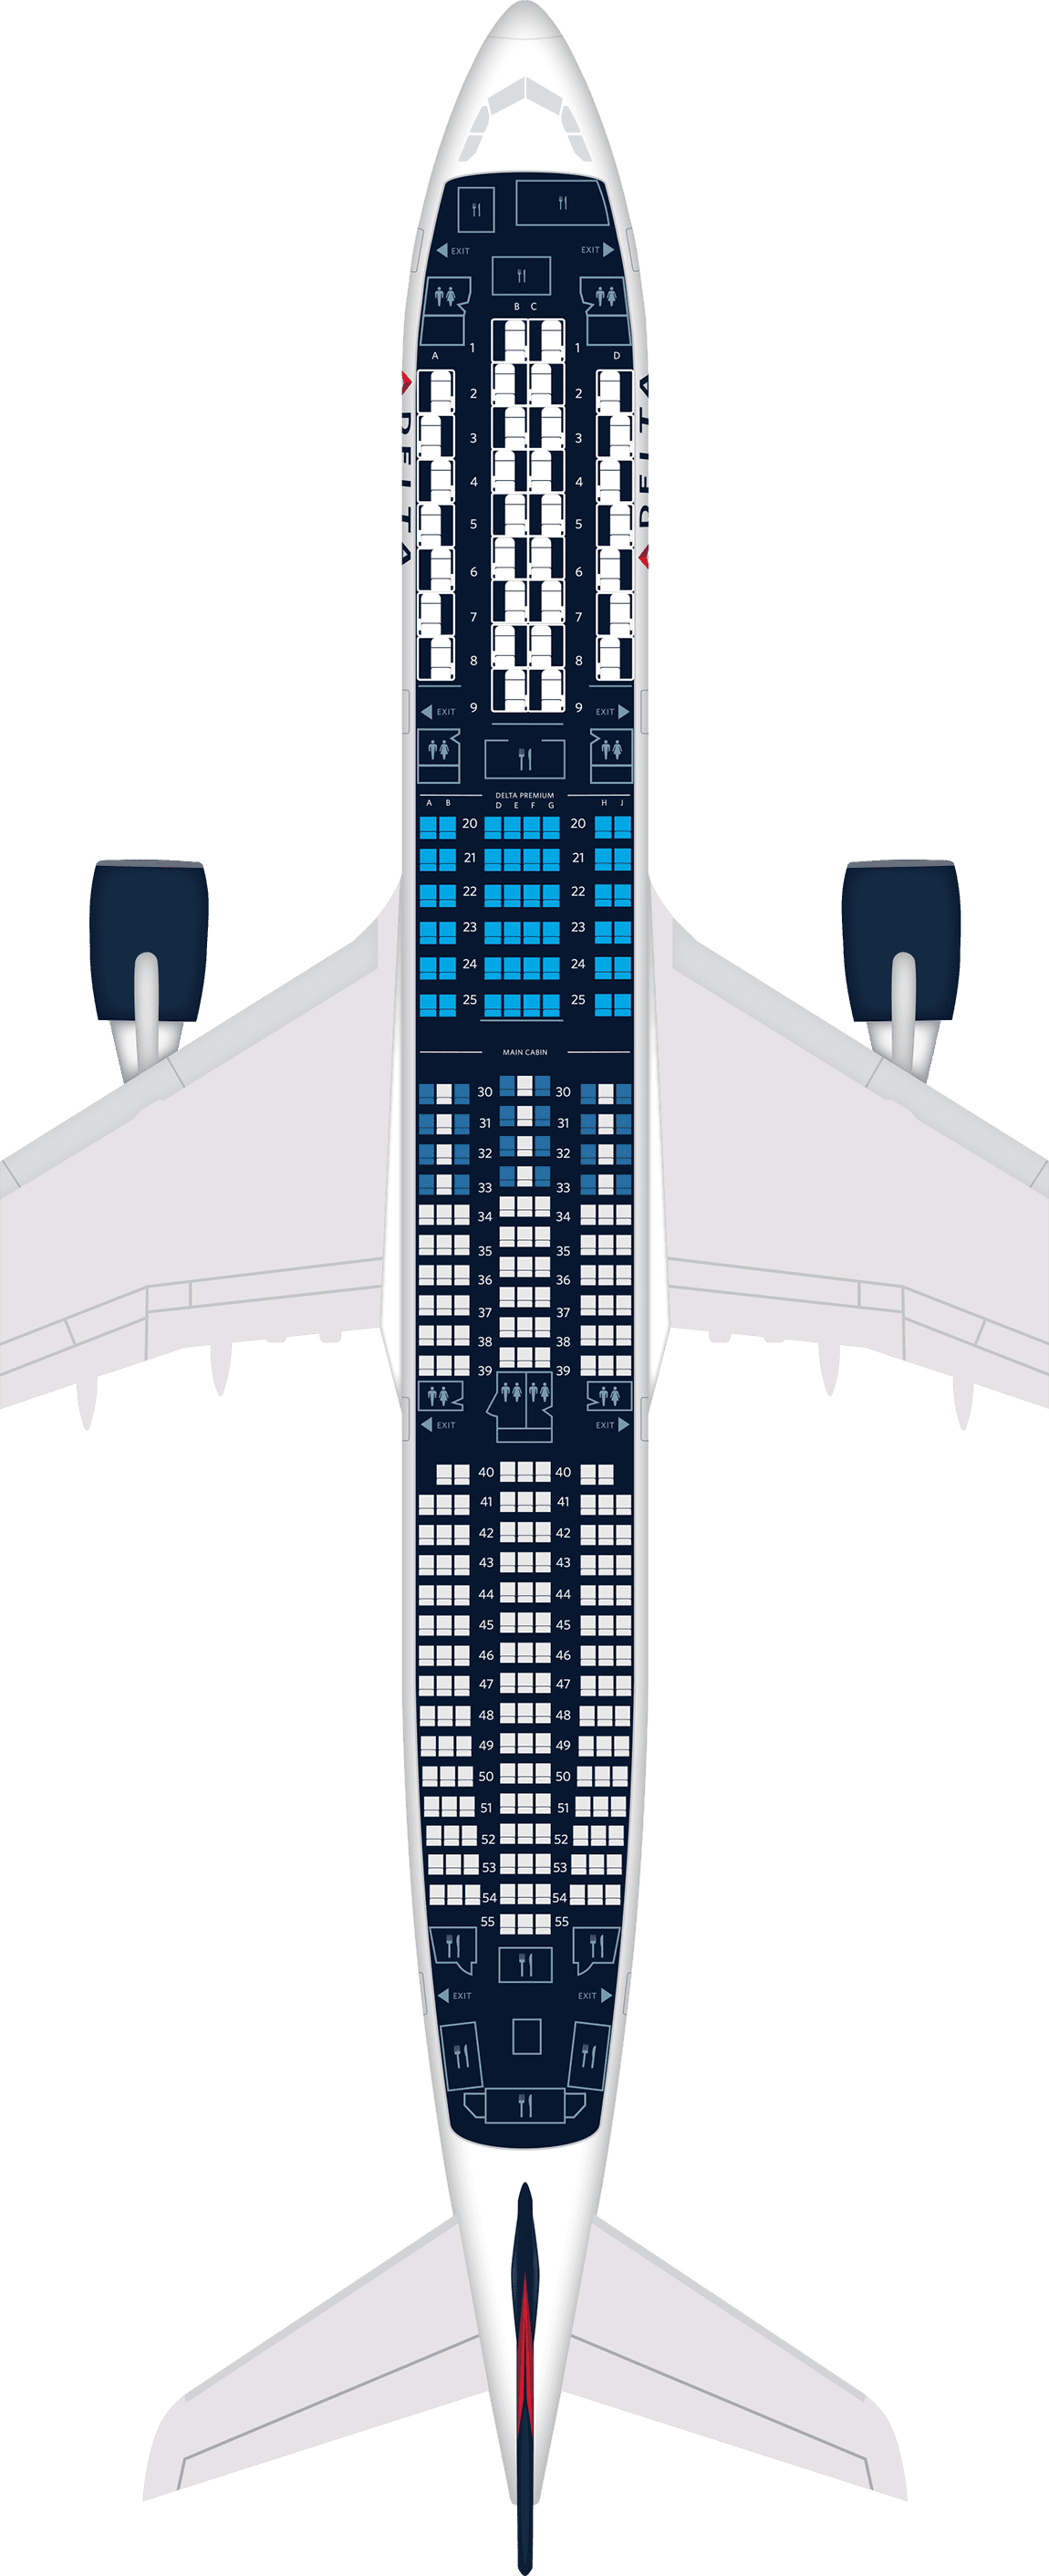 Airbus A350 Aircraft Seat Maps, Specs & Amenities : Delta ... on lot 787 seat map, a346 seat map, a340-500 seat map, airline seat map, a350-900 seating map, dc8 seat map, b737 seat map, 787-9 seat map, us airways a321 seat map, a380 seat map, l1011 seat map, us air a330-300 seat map, lufthansa seat map, a340-300 seat map, a388 seat map, a345 seat map, embraer e-190 seat map, 787-800 seat map, b747-8 seat map, a318 seat map,